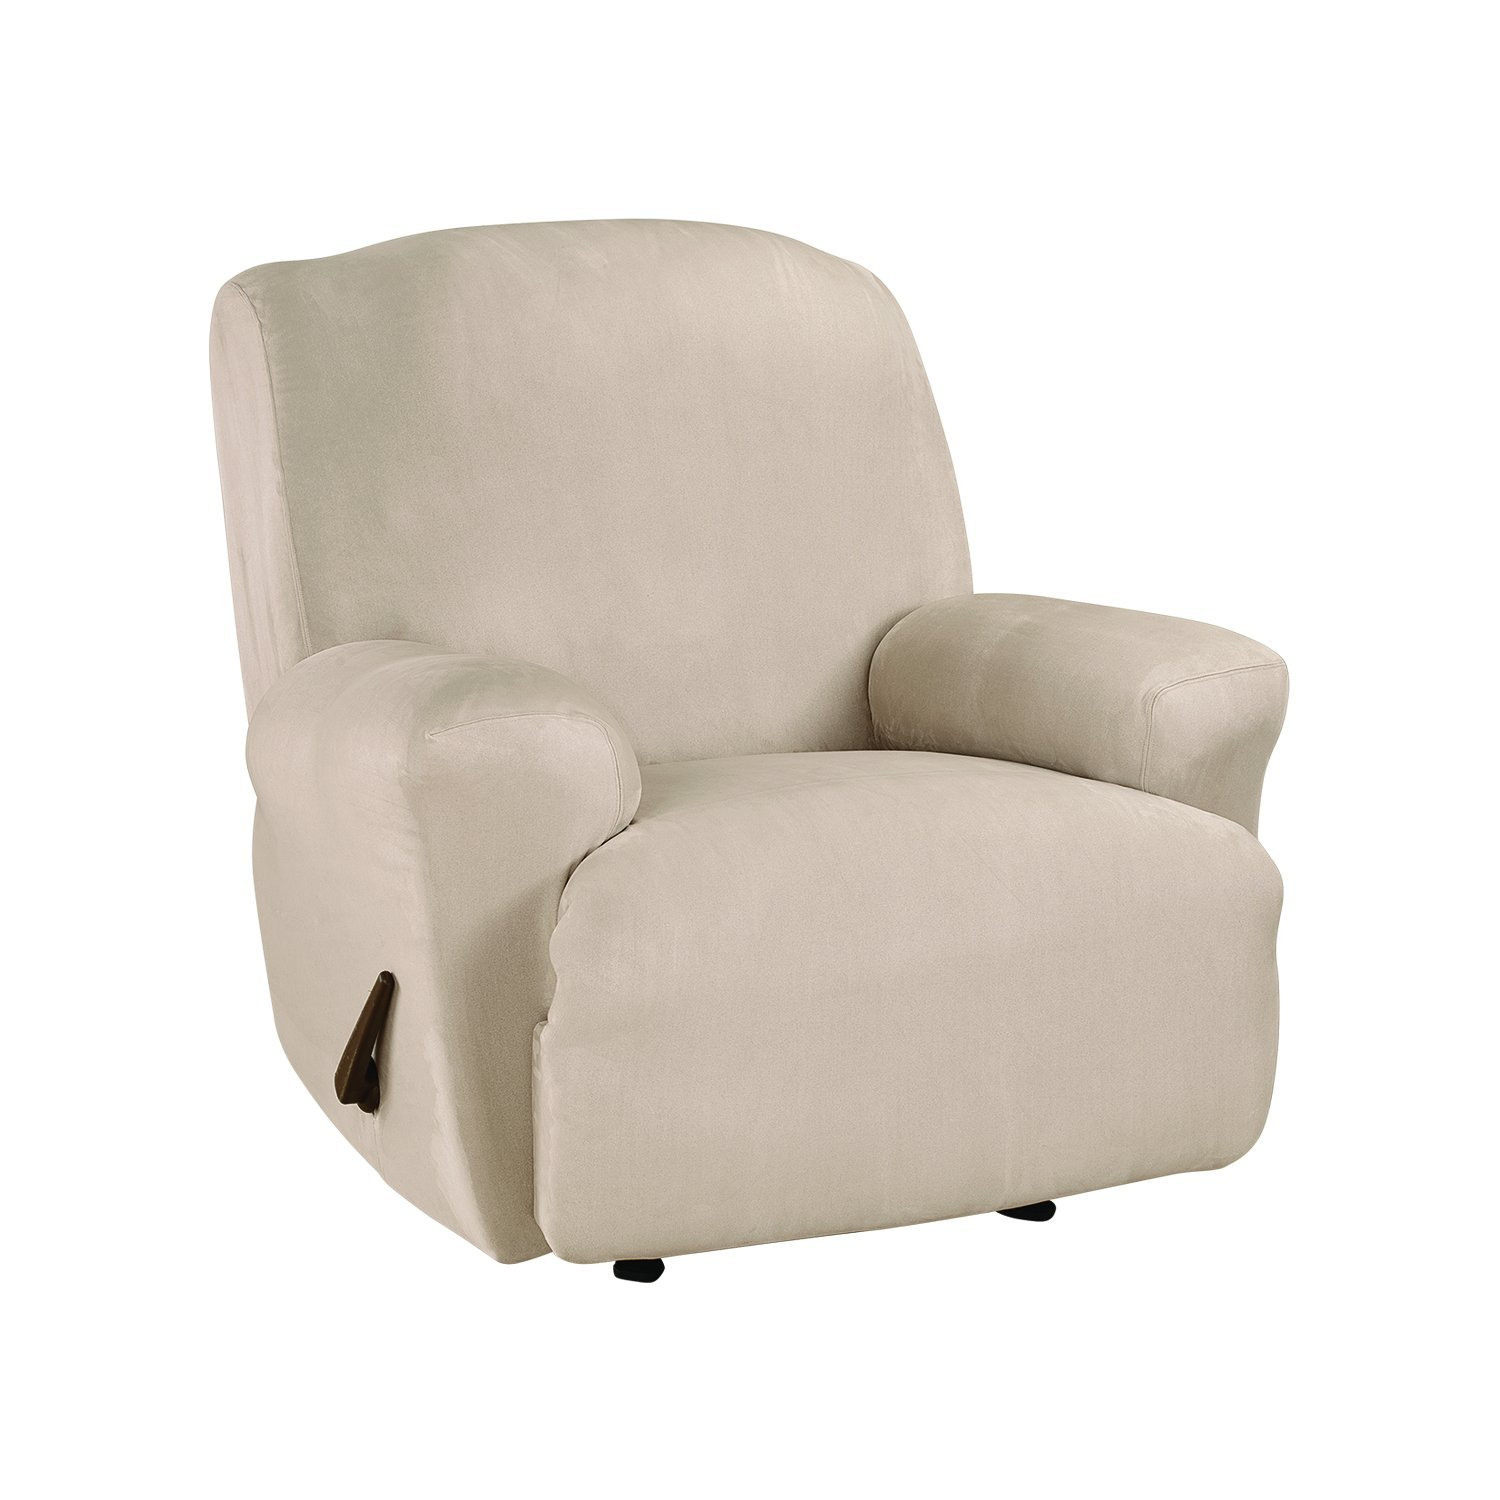 Sure Fit Ultimate Stretch Suede - Recliner Slipcover - Cement (SF45267) Sure Fit Inc.